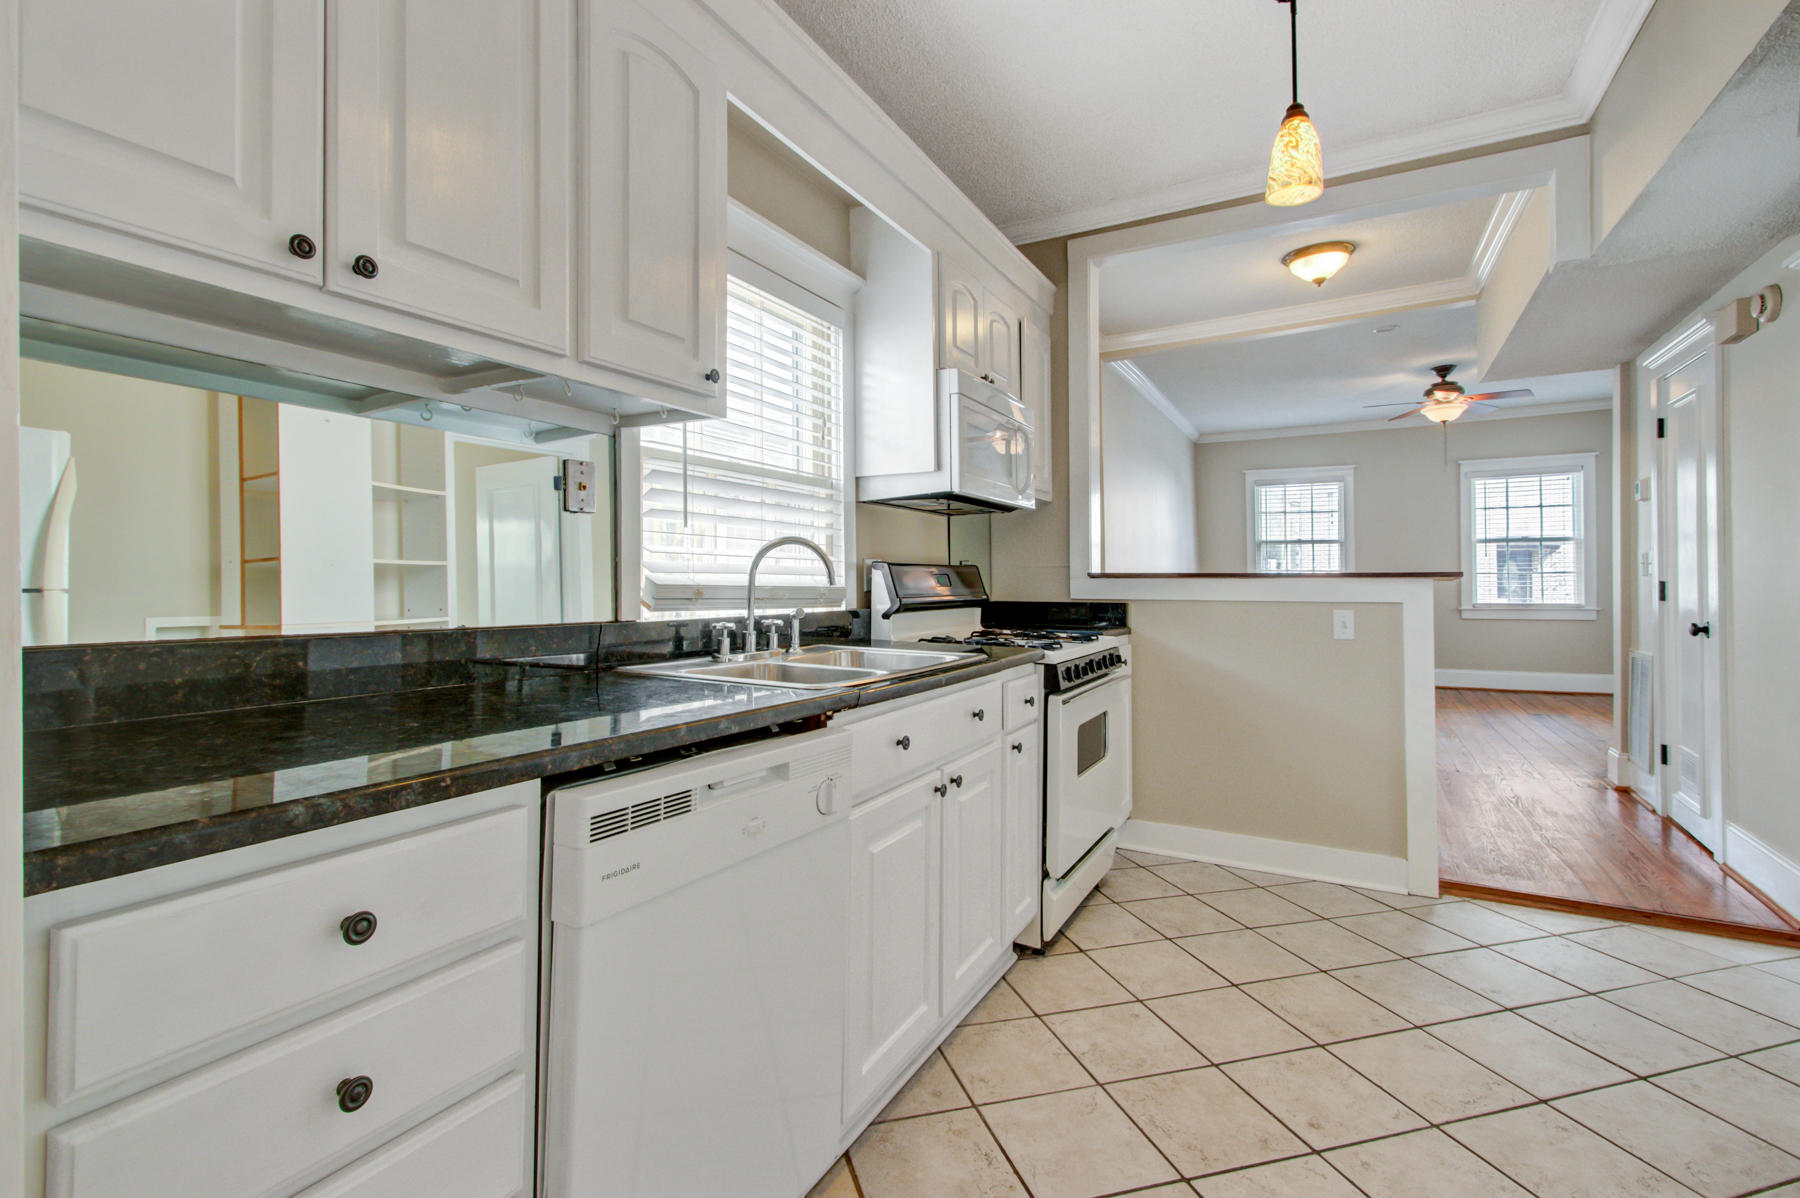 Elliotborough Condos For Sale - 3 Kracke, Charleston, SC - 12